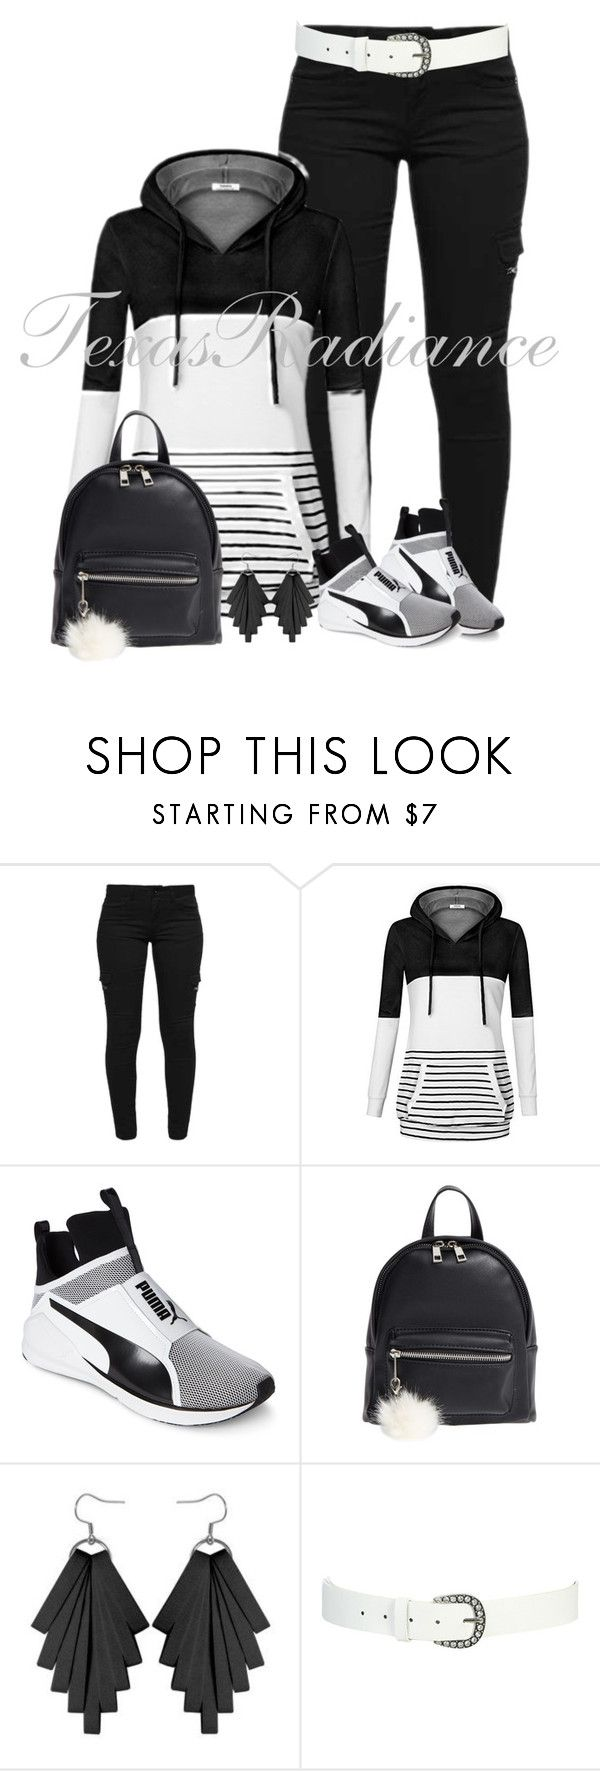 """Drake-Hot Line Bling"" by texasradiance ❤ liked on Polyvore featuring Puma, BP. and Wet Seal"